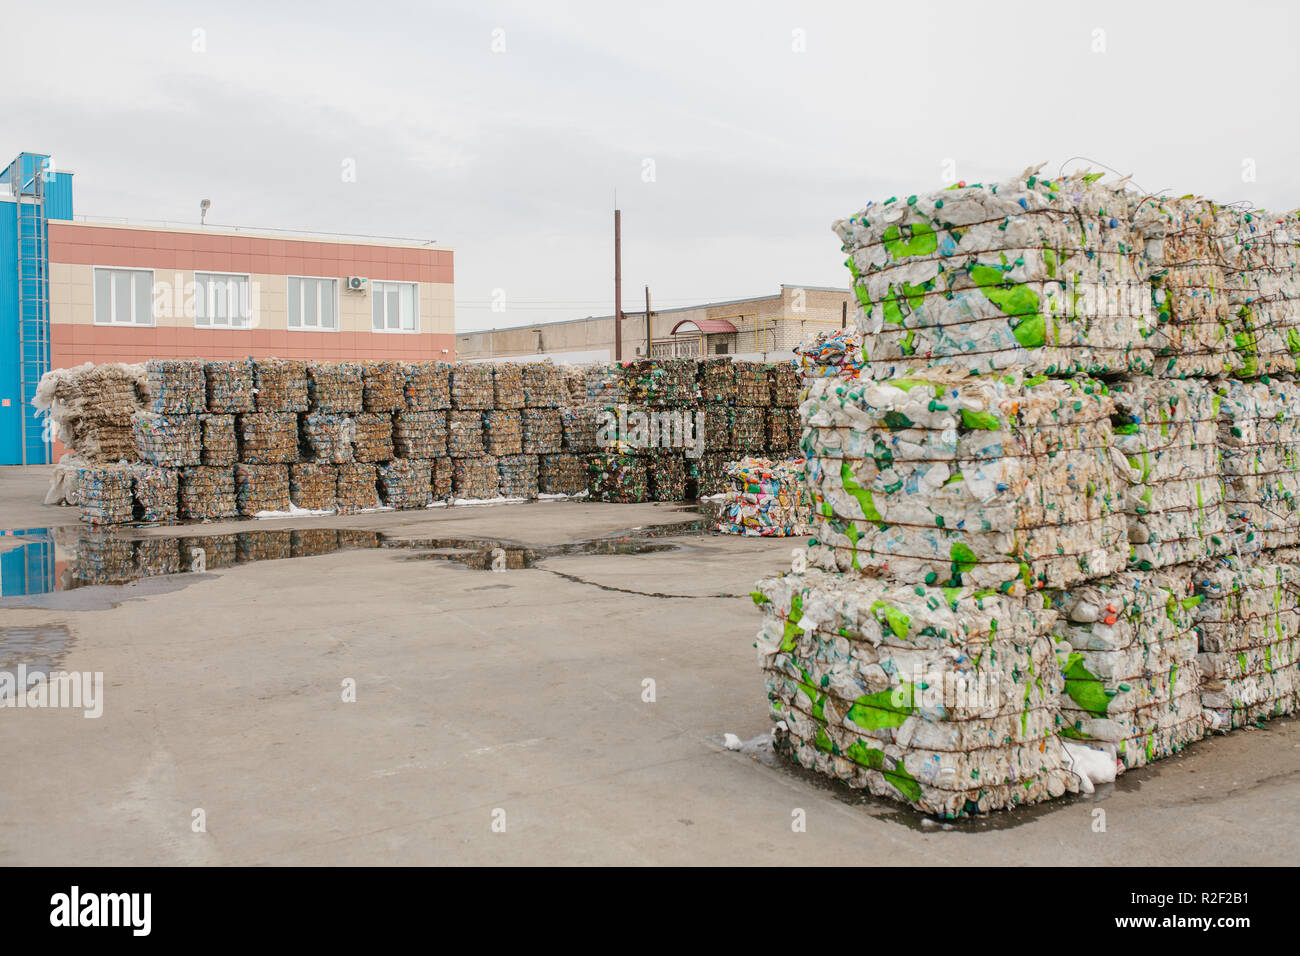 Storage of sorted waste at a waste processing plant for further processing and disposal. - Stock Image